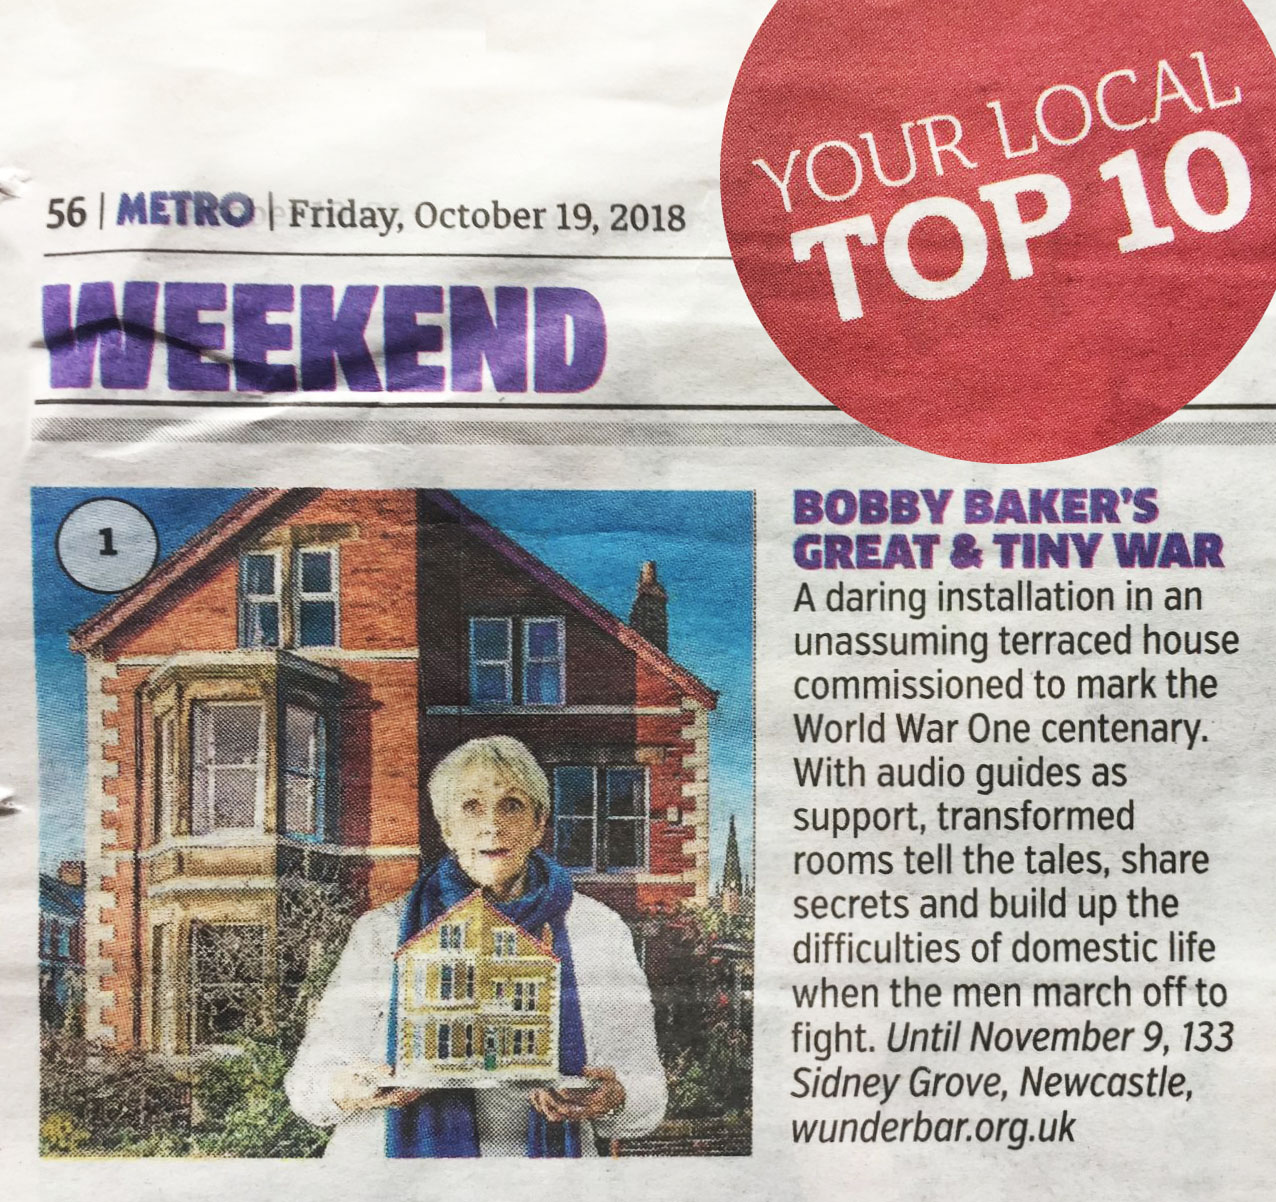 The Metro - Weekend No.1 - Your local top 10